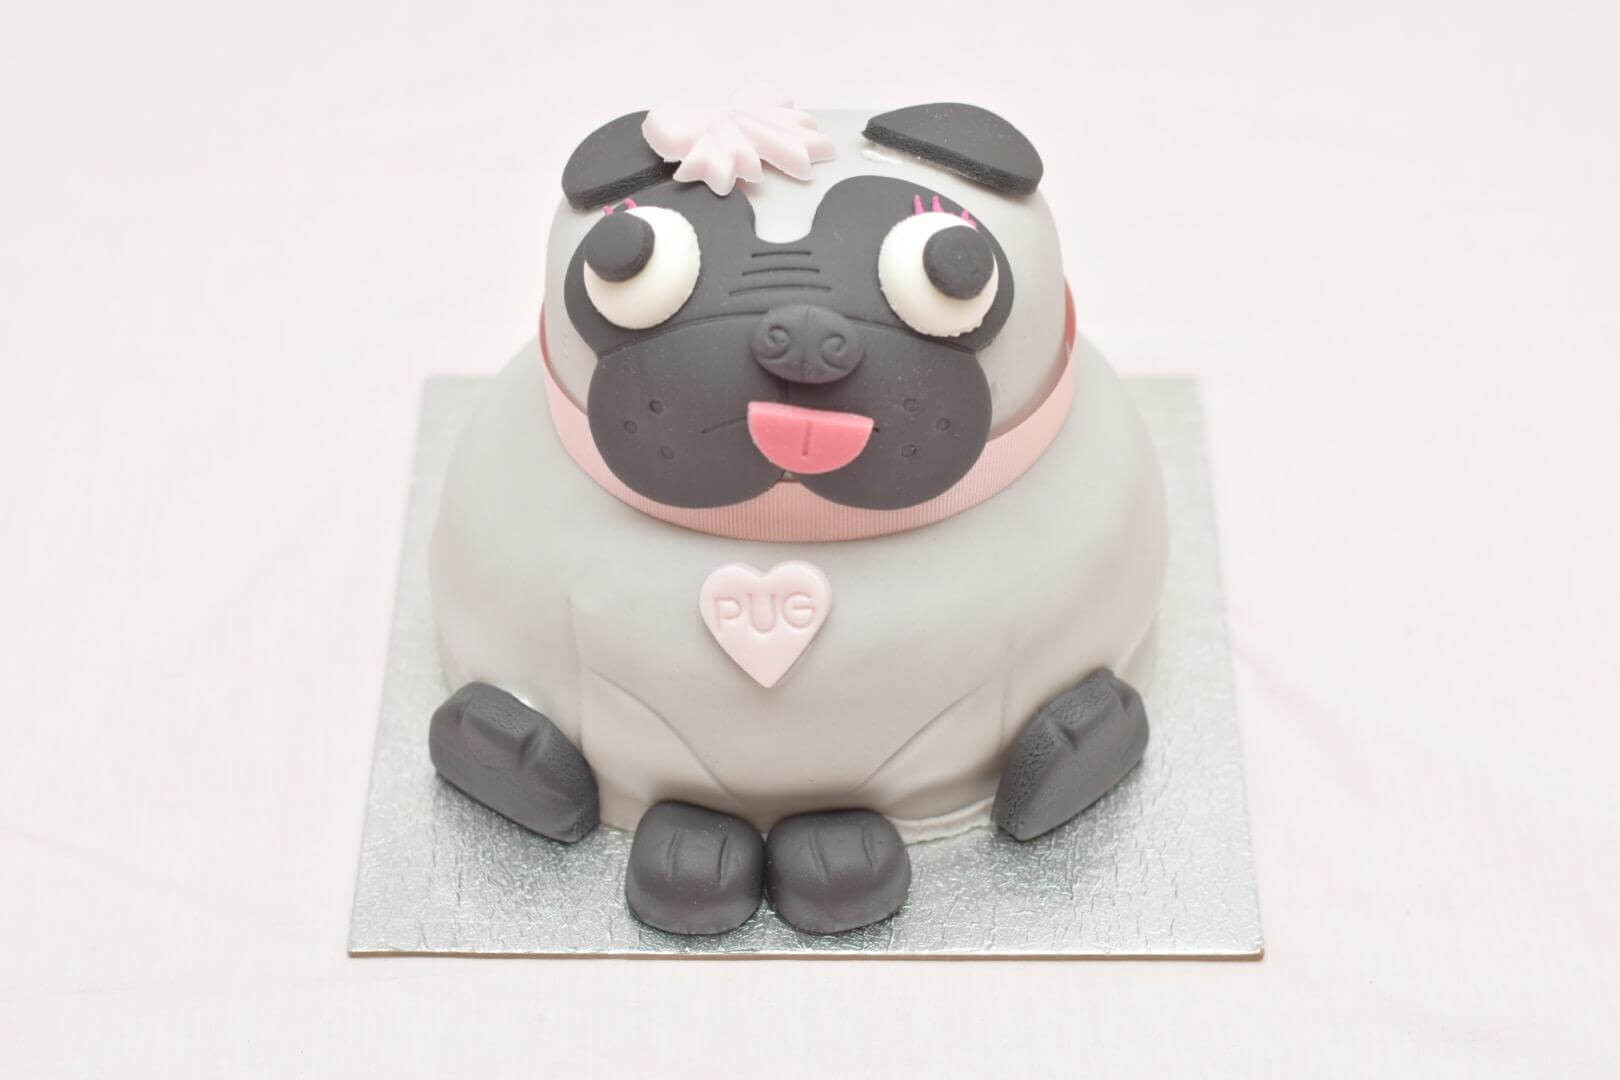 Best ideas about Pug Birthday Cake . Save or Pin A Pug Birthday Cake From Asda · The Inspiration Edit Now.